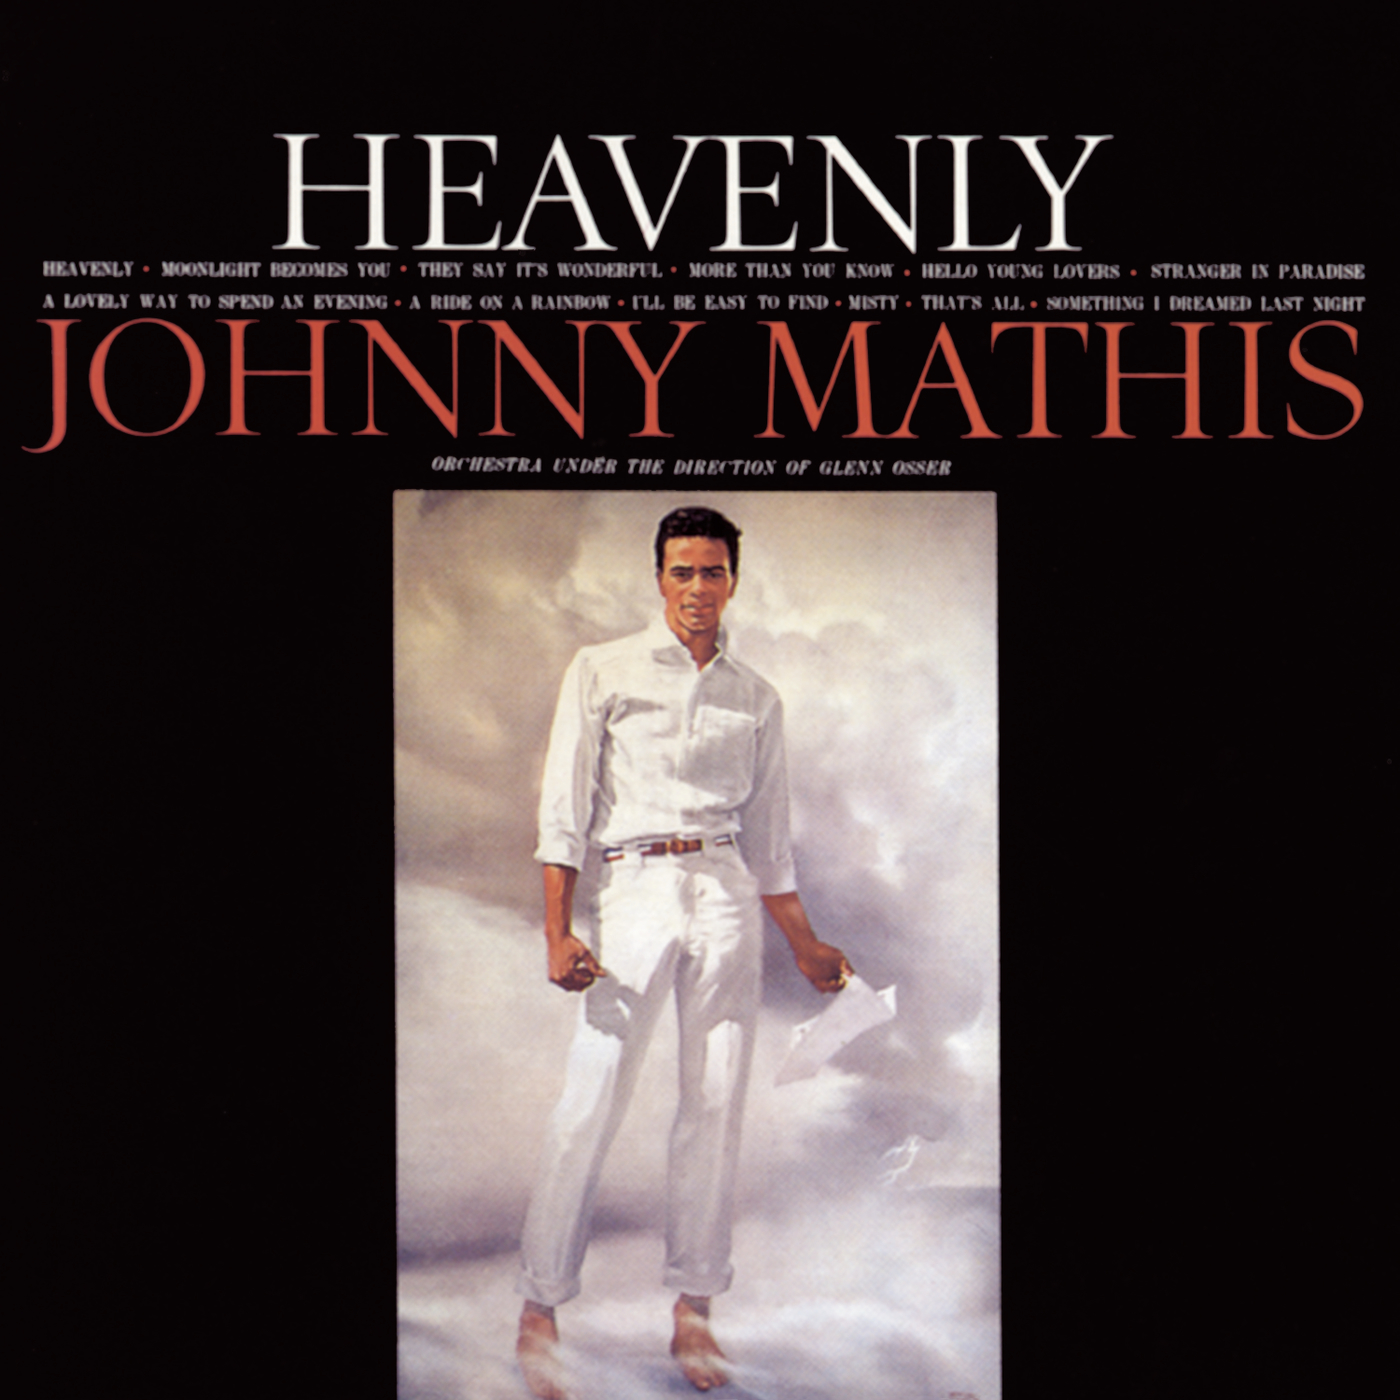 Heavenly - Johnny Mathis